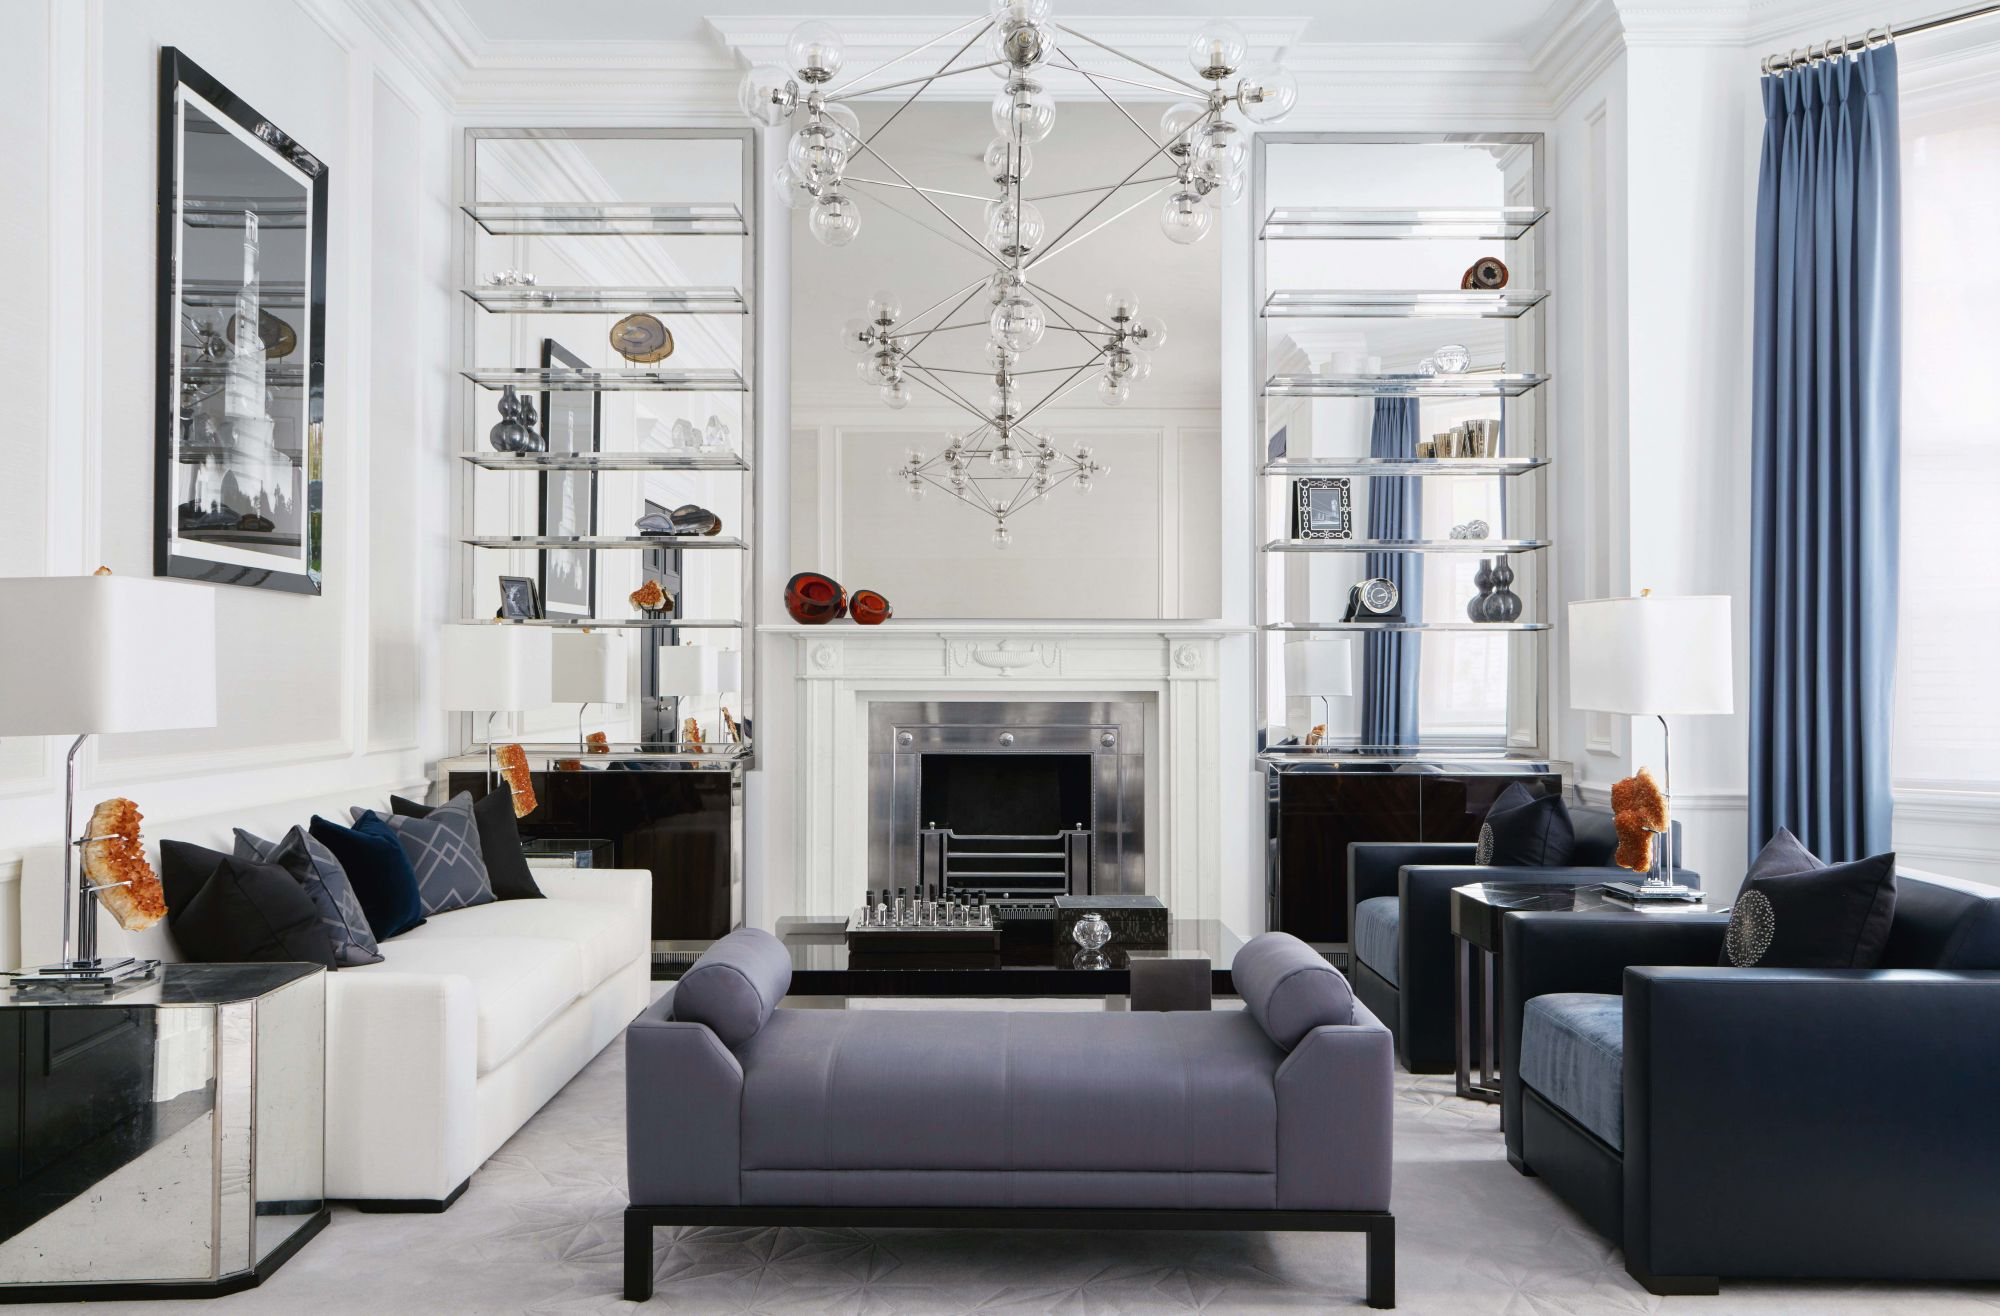 Home Tour: This London Townhouse Retains Its Elegance With An Impactful Use of Blue